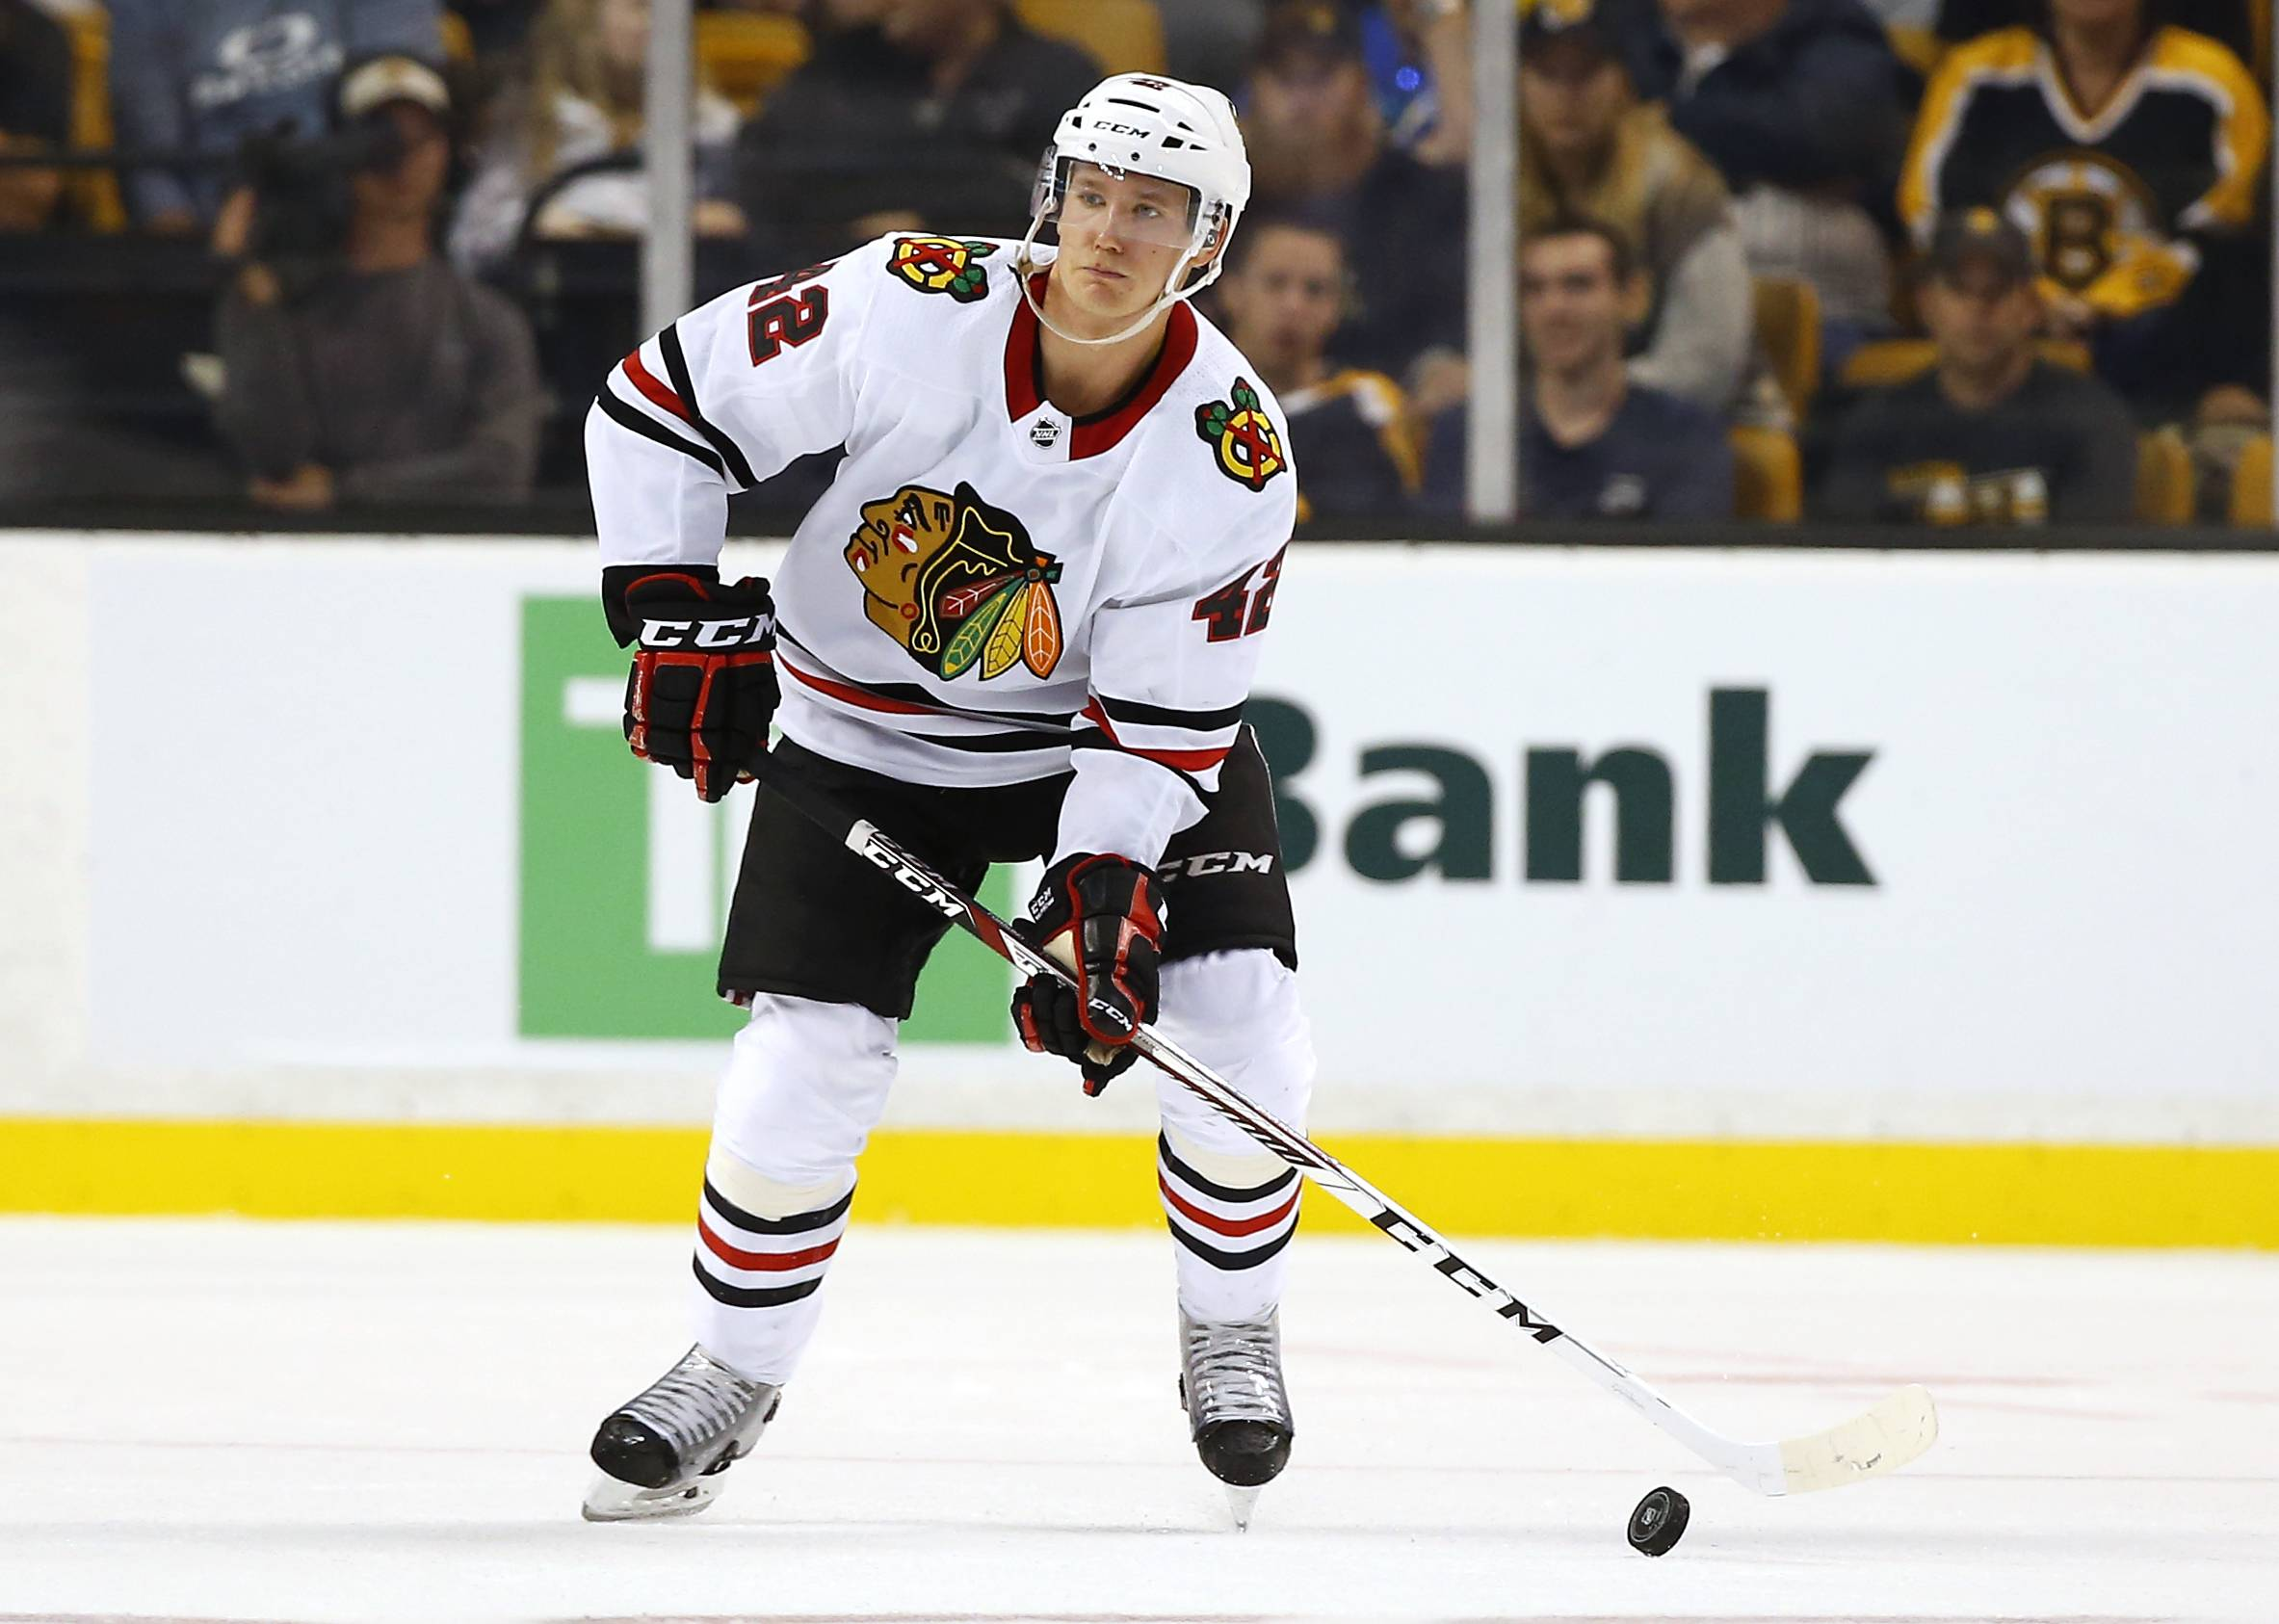 Chicago Blackhawks defenseman Gustav Forsling during the third period of the Bruins 4-2 win over the Chicago Blackhawks in an NHL preseason hockey game in Boston, Monday, Sept. 25, 2017.